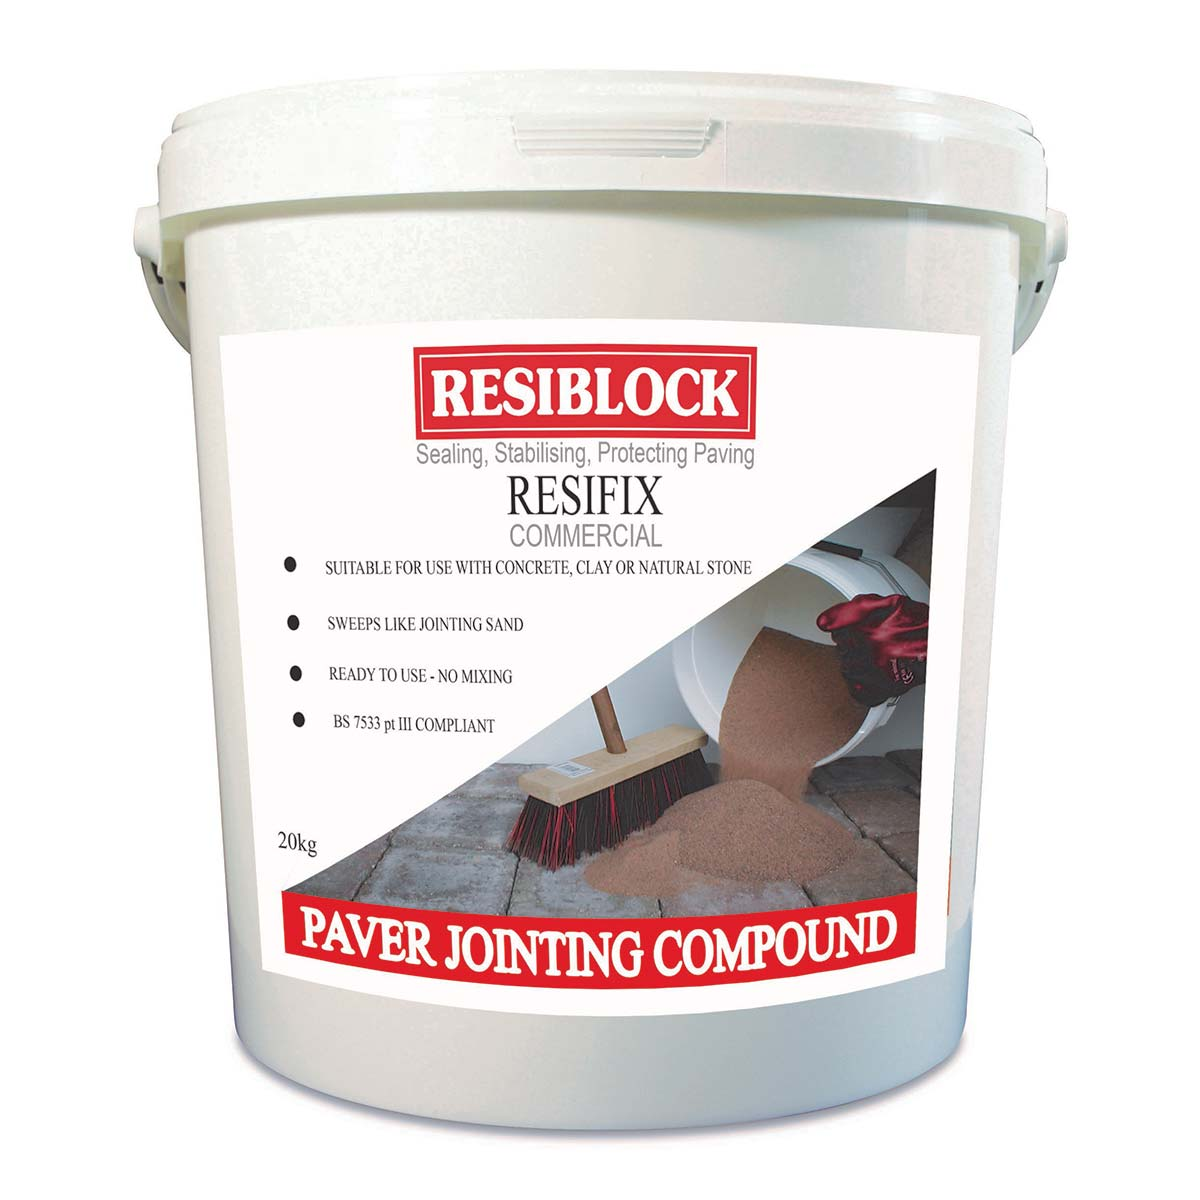 Paver Jointing Compound